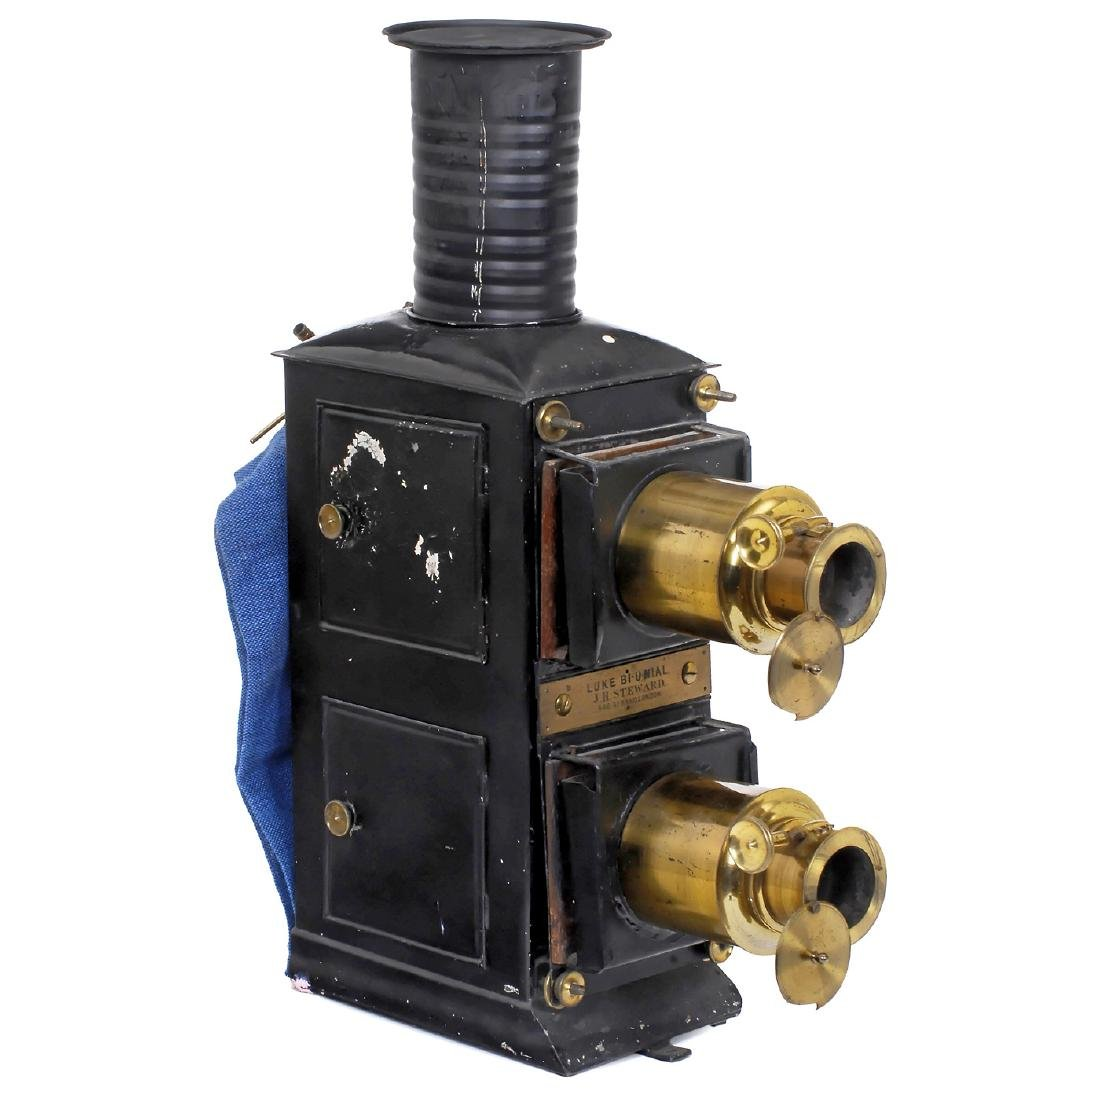 Luke Bi-Unial Magic Lantern, c. 1900